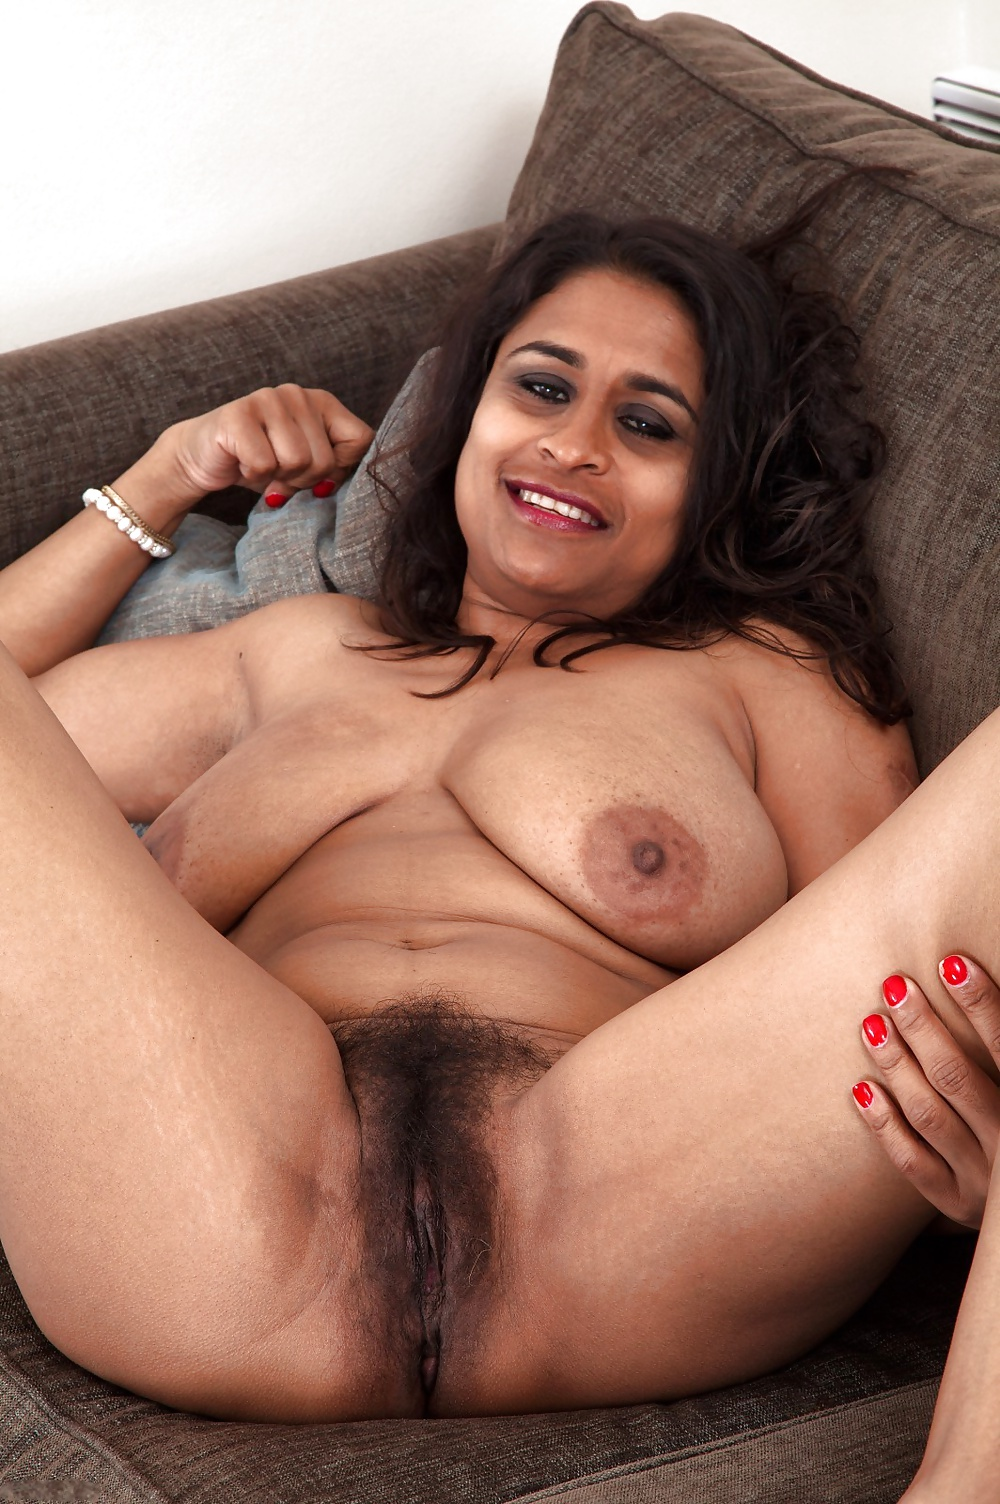 virginity-free-porn-images-of-indian-moms